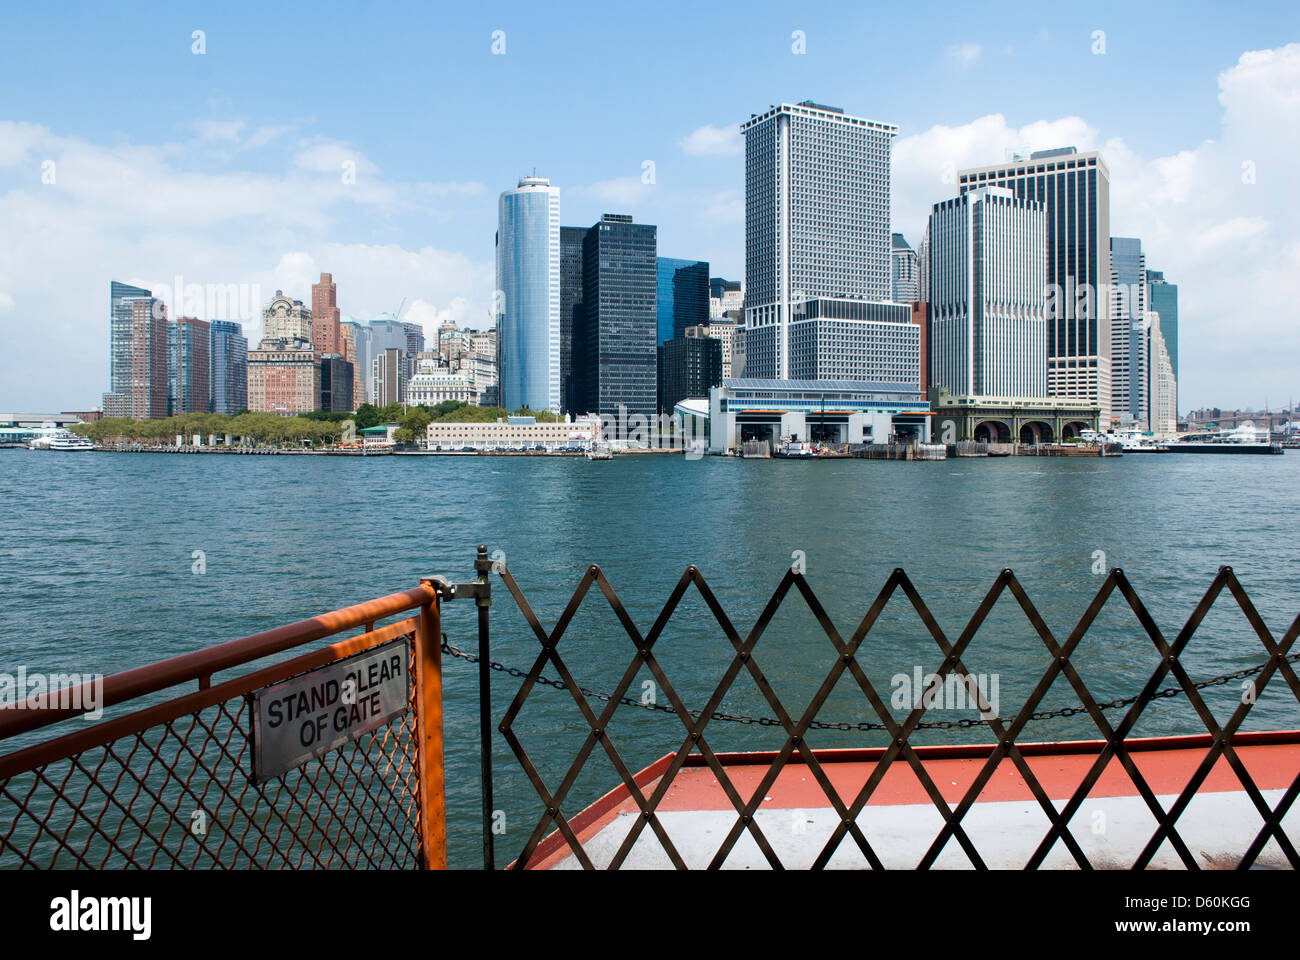 Lower Manhattan Skyline without the former World Trade Center, New York City Stock Photo